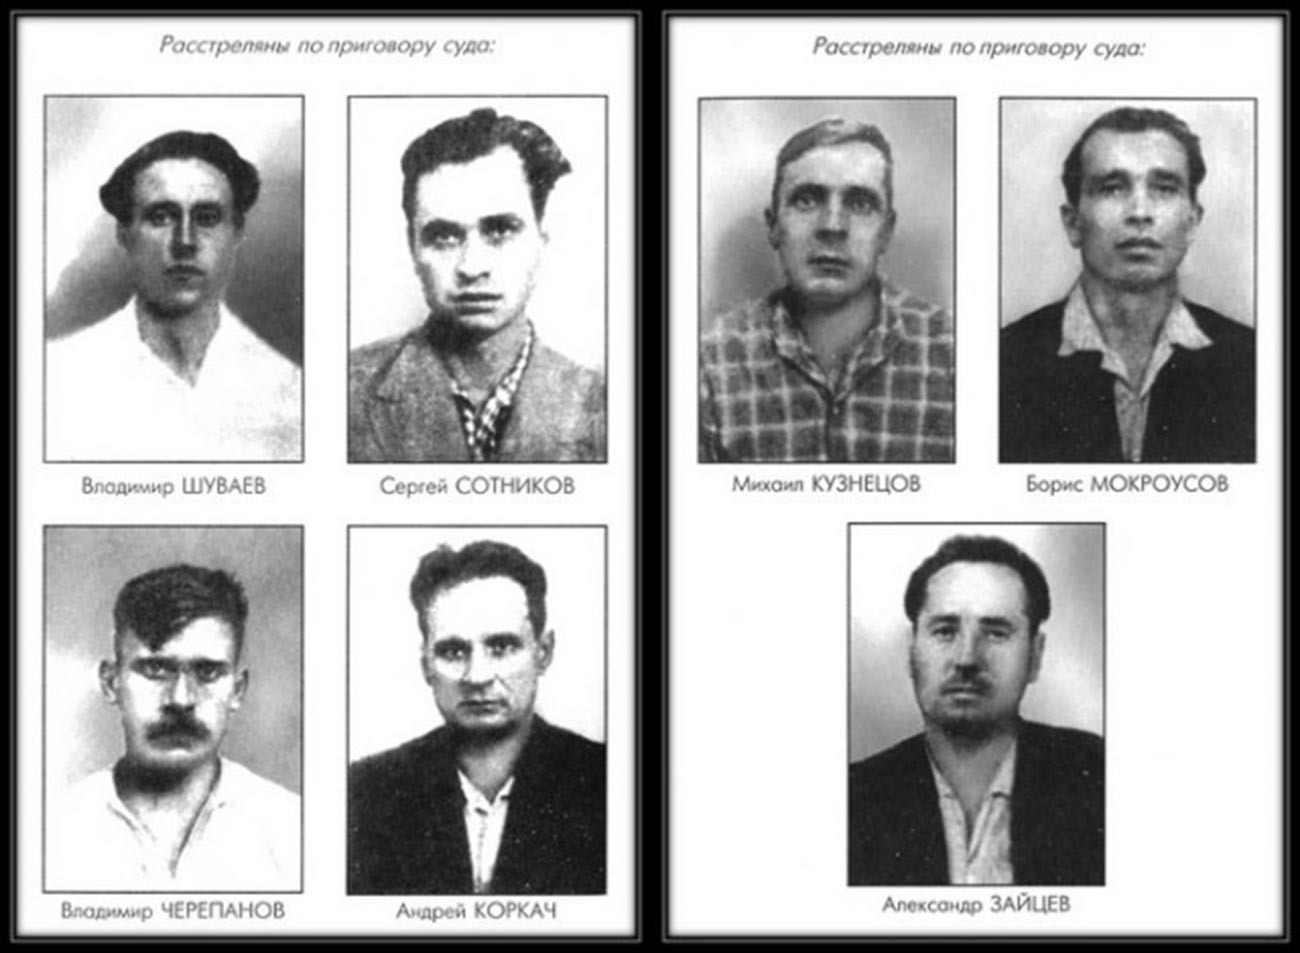 The seven workers of the NEBF condemned to execution by shooting: Vladimir Shuvaev (1937-1962), Sergey Sotnikov (1937-1962), Mikhail Kuznetsov (1930-1962), Boris Mokrousov (1923-1962), Vladimir Cherepanov (1933-1962), Andrey Korkach (1917-1962), Alexander Zaytsev (1927-1962).